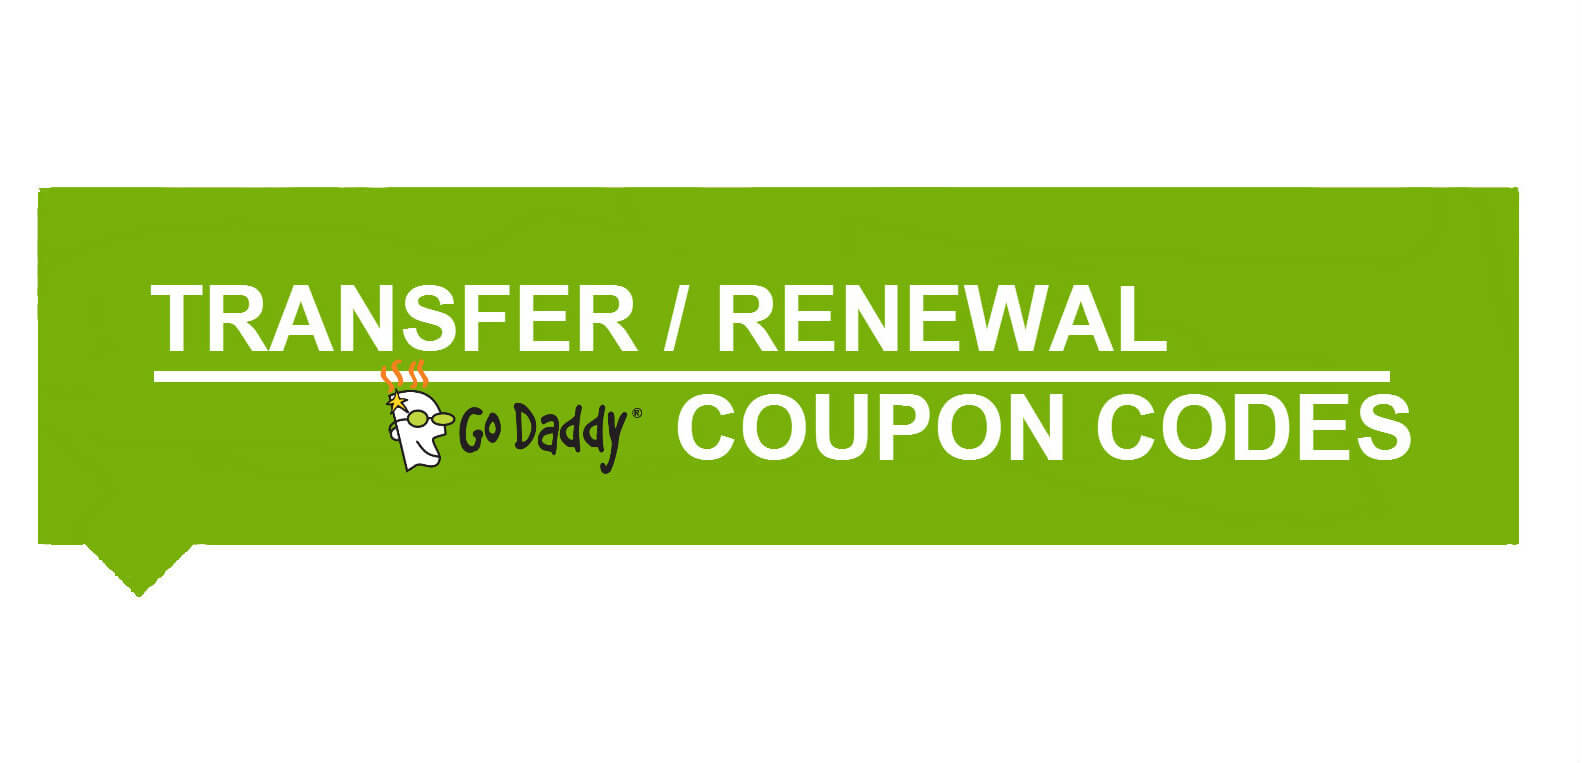 Go daddy coupon codes